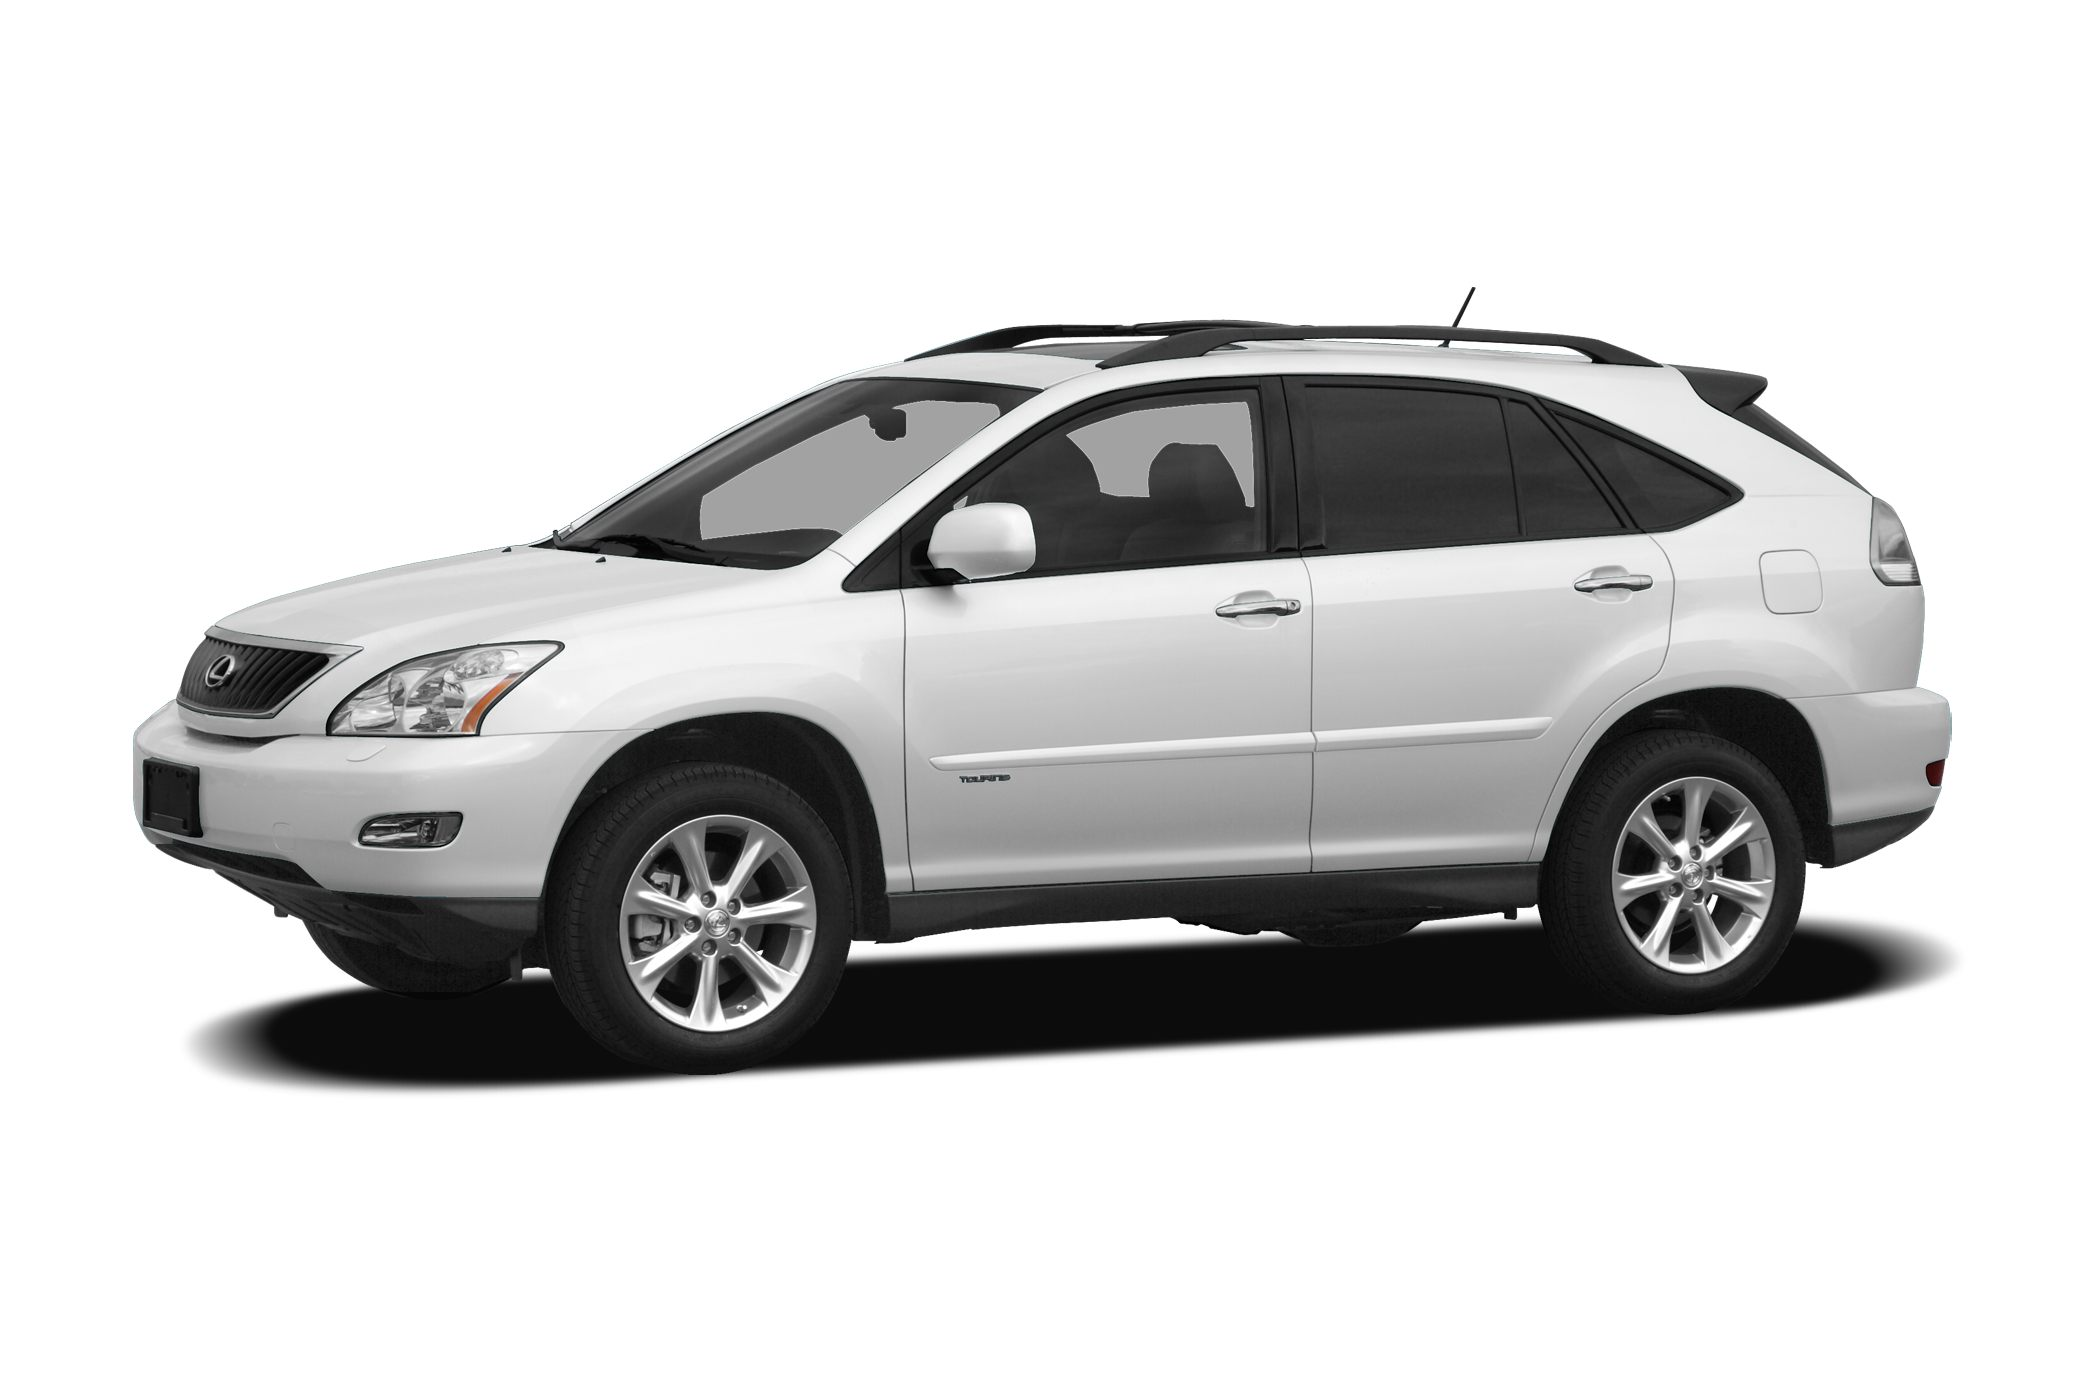 2008 Lexus RX 350 Base YOU HAVE TO SEE THIS RX350 FOLKSABSOLUTELY MINT CONDITION RX 350 4D S